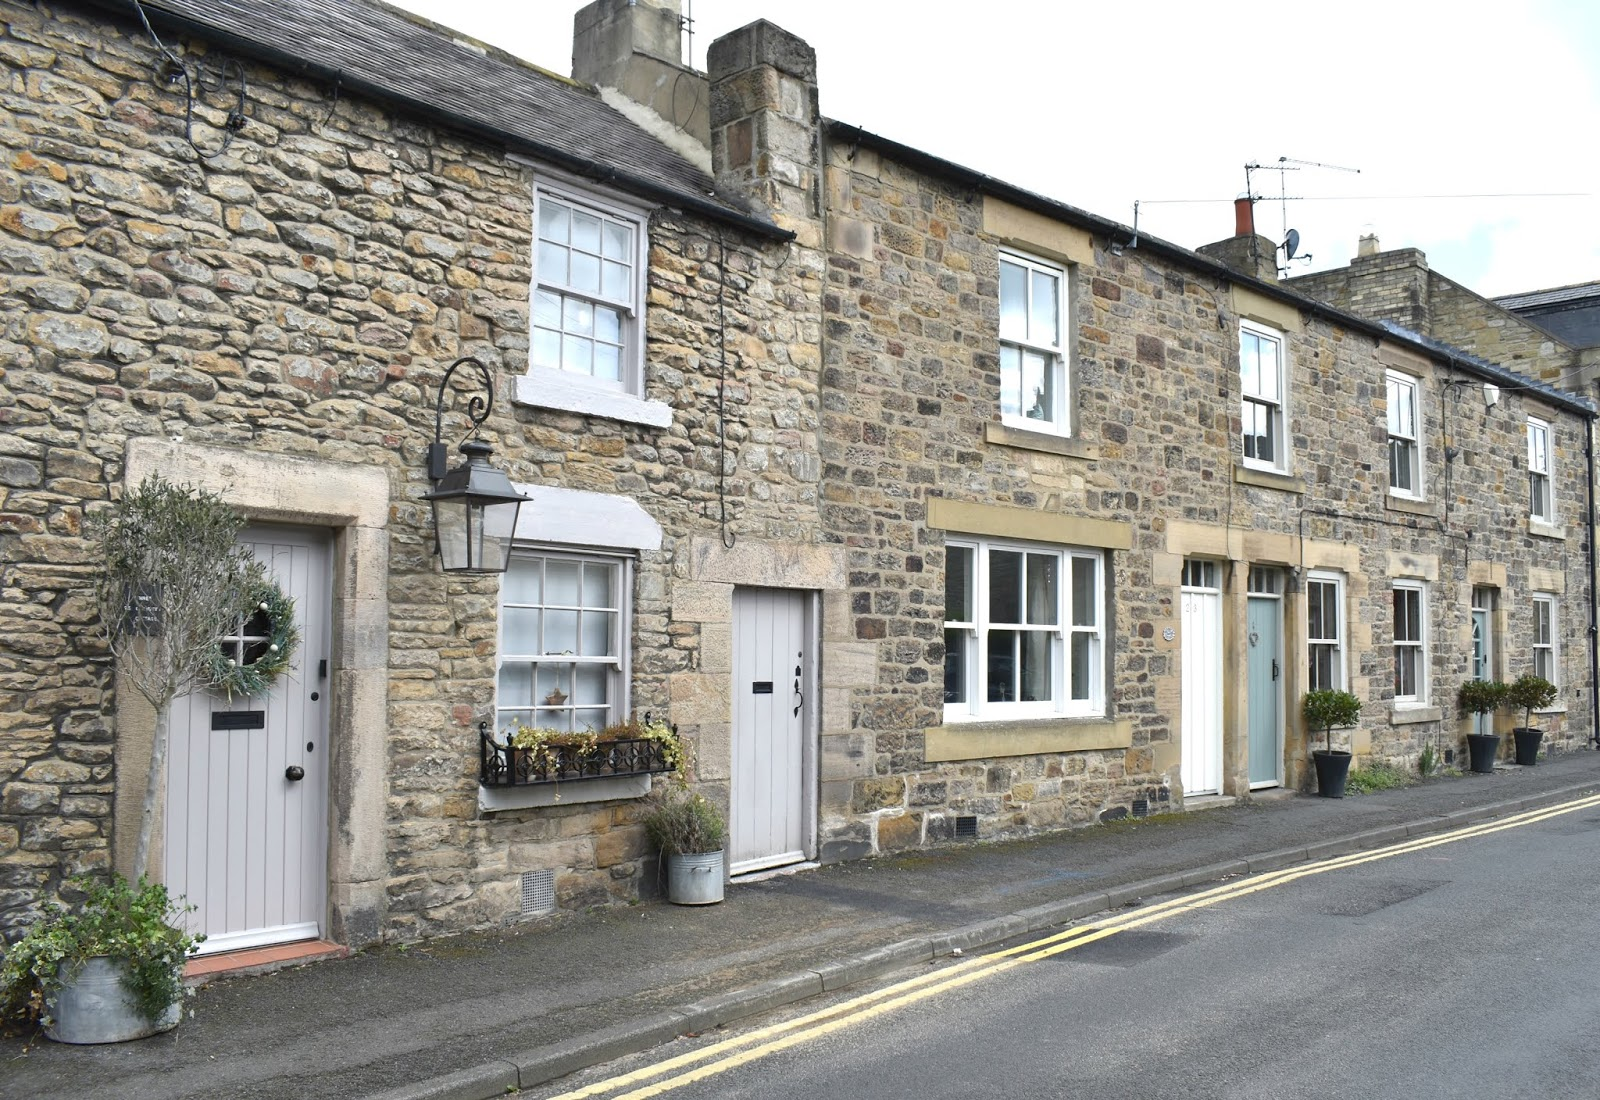 Day Trip to Corbridge in Northumberland